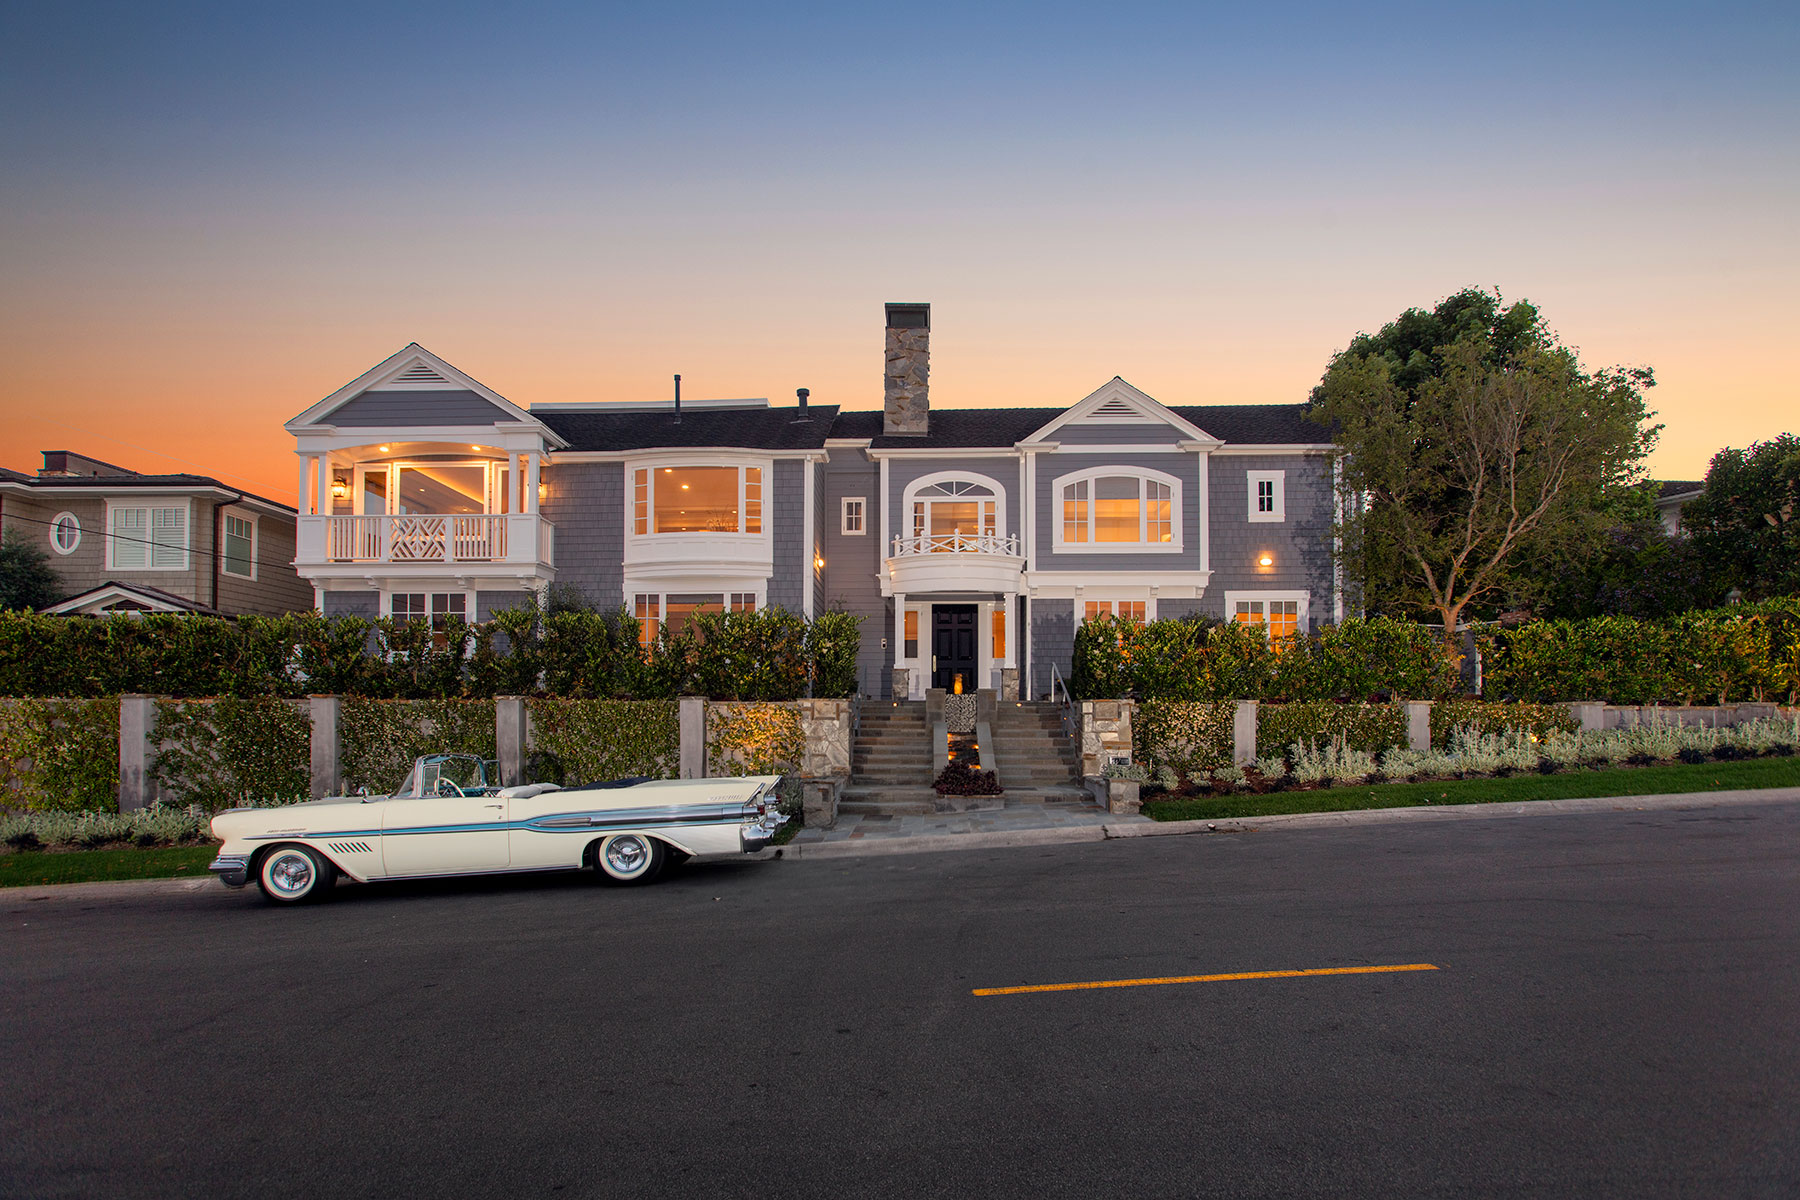 Maison unifamiliale pour l Vente à 125 Kings Newport Beach, Californie, 92663 États-Unis